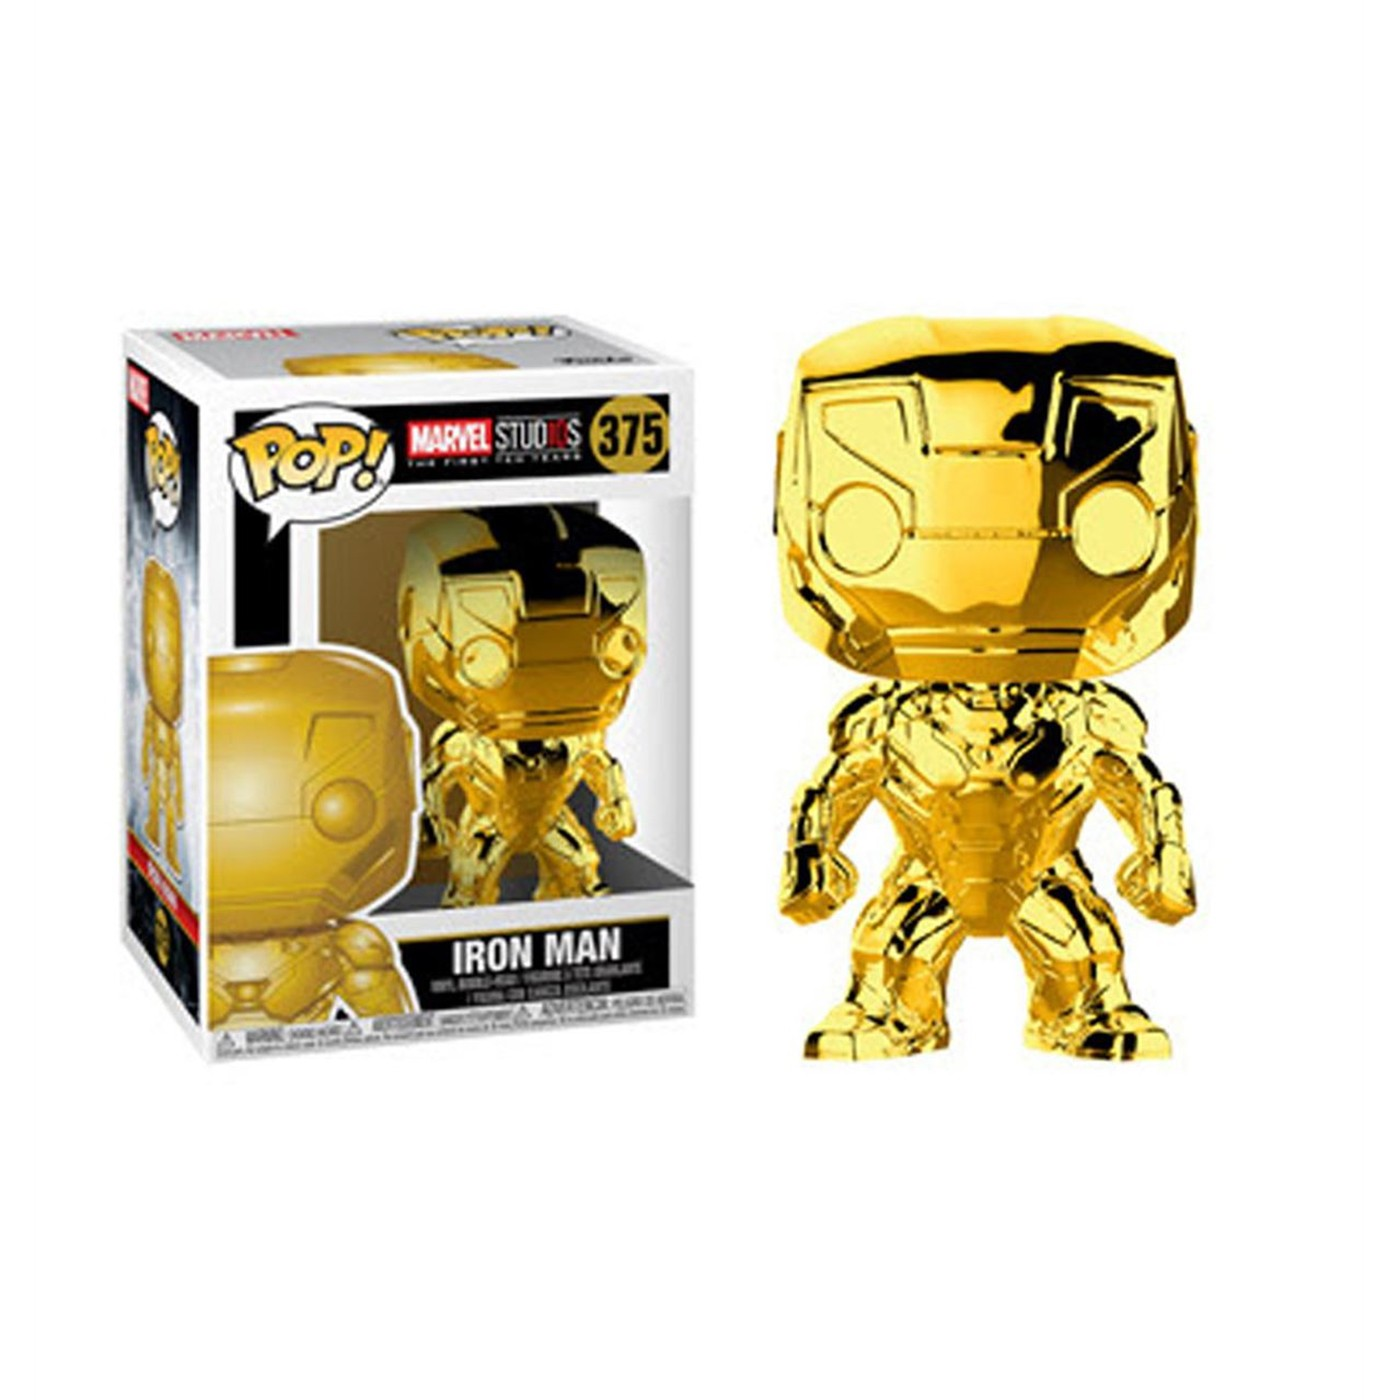 Marvel Studios 10th Anniv Iron Man Gold Chrome Funko Pop Bobble Head